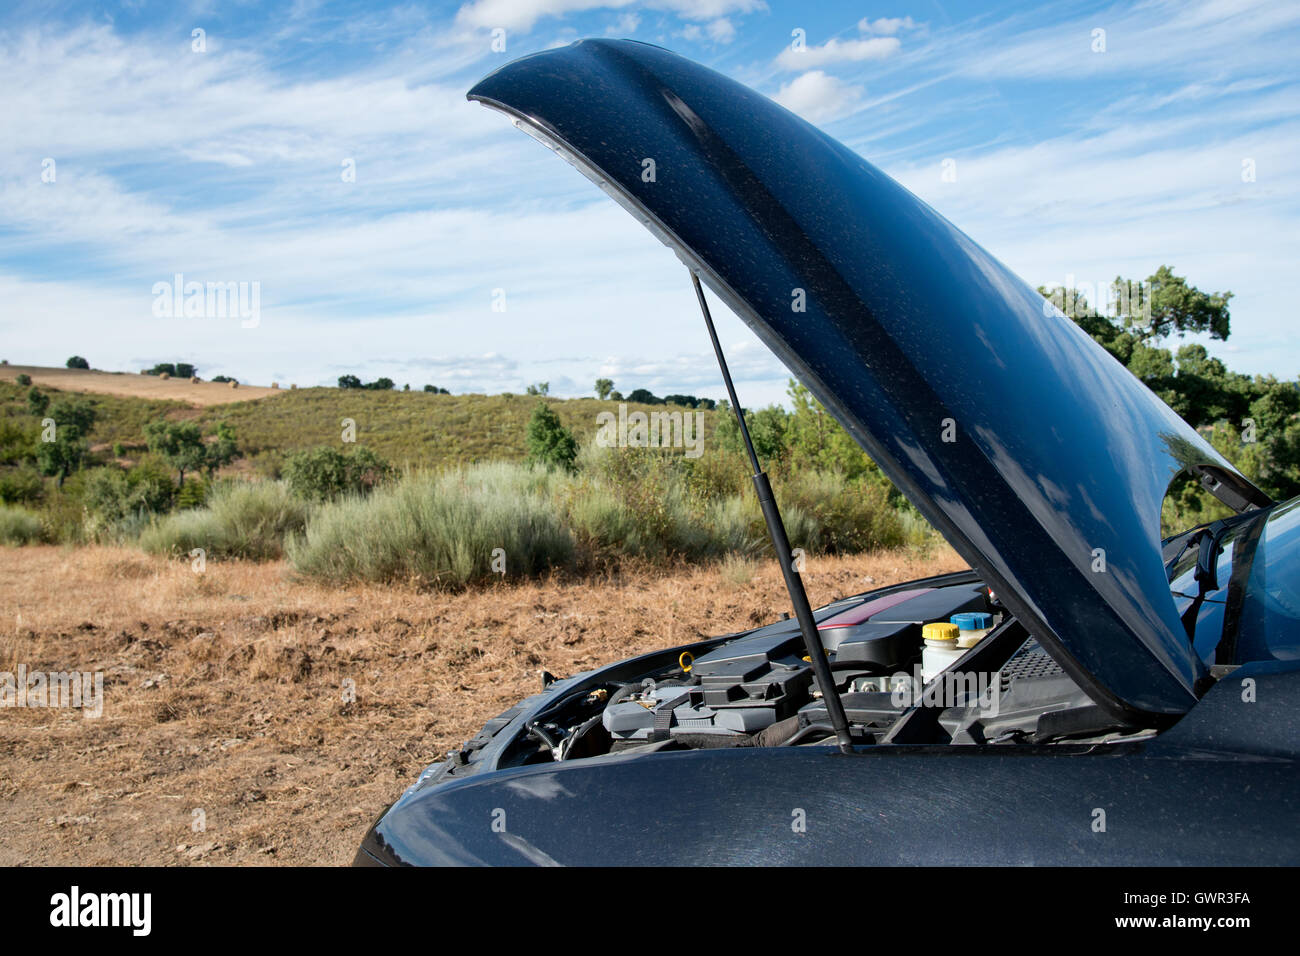 Close up of a broken down car, engine open, in a rural area - Stock Image